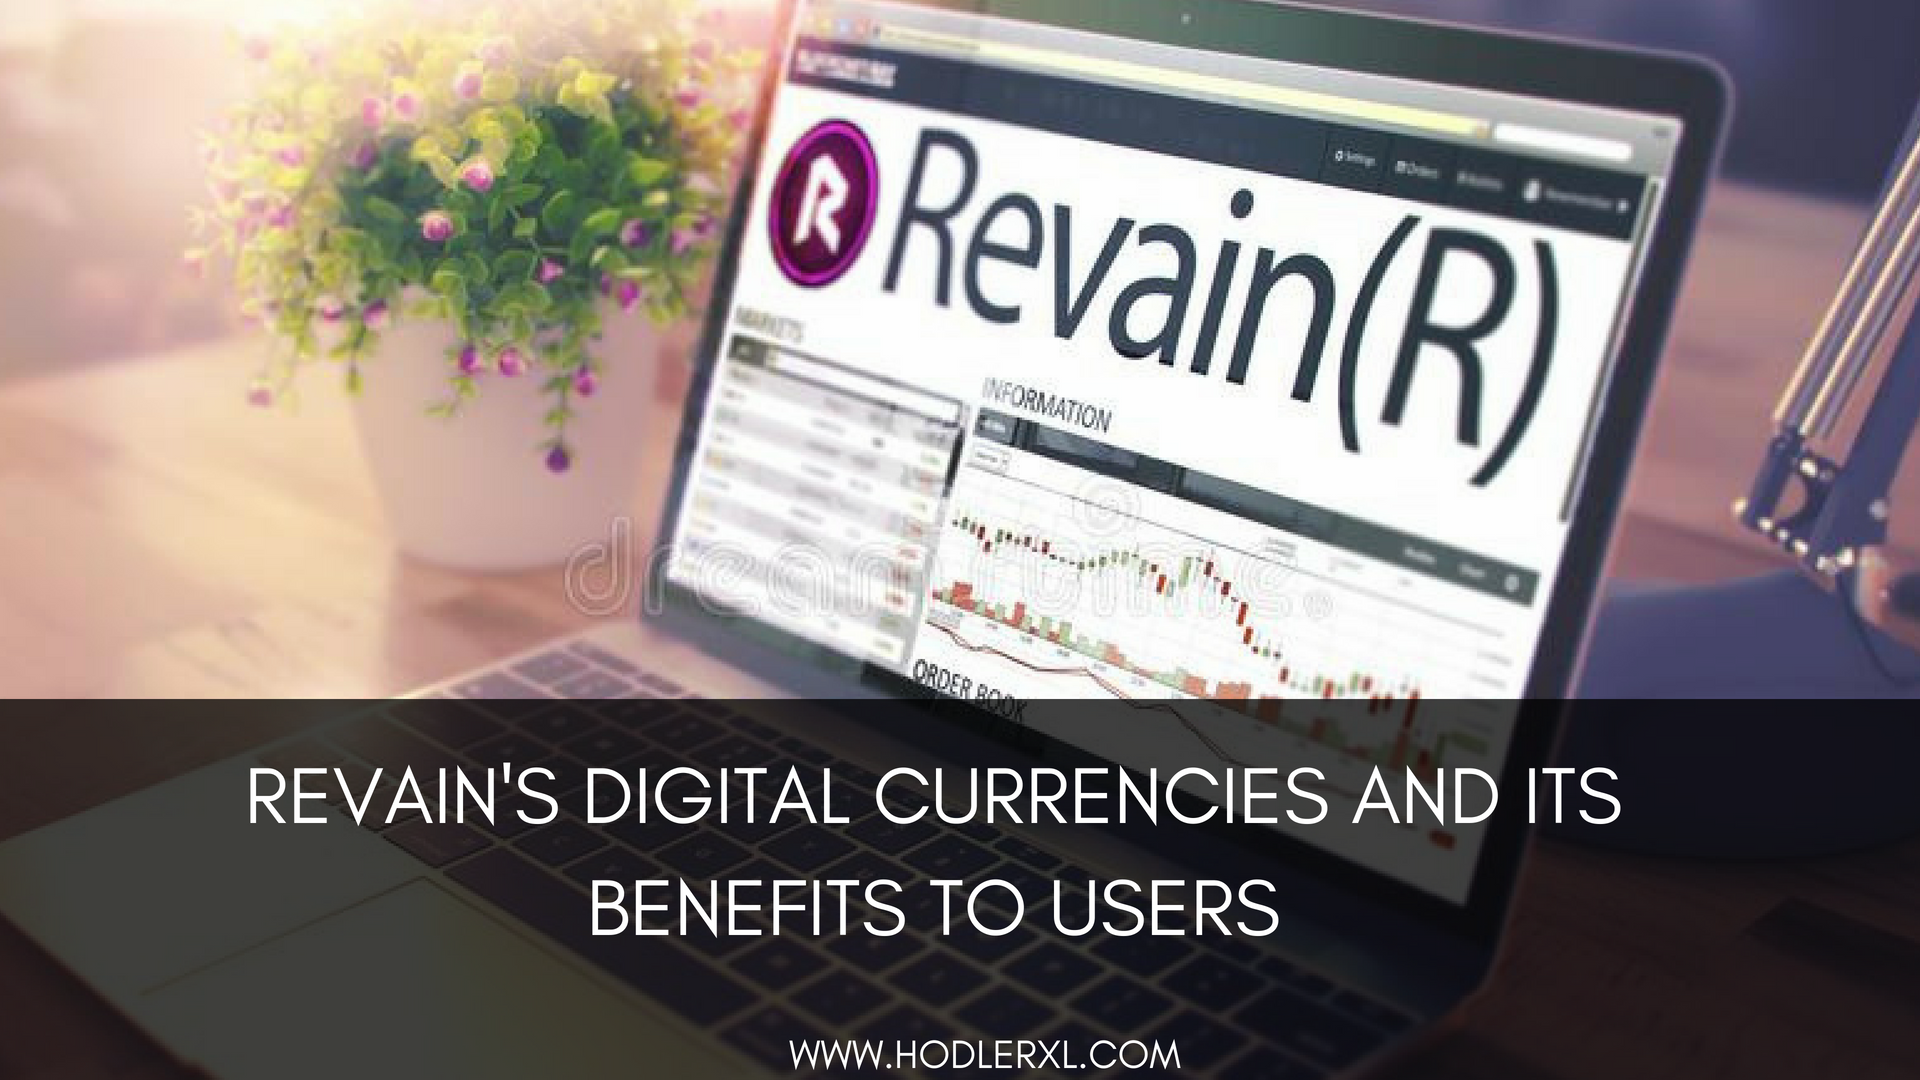 Revain's Digital Currencies And Its Benefits To Users